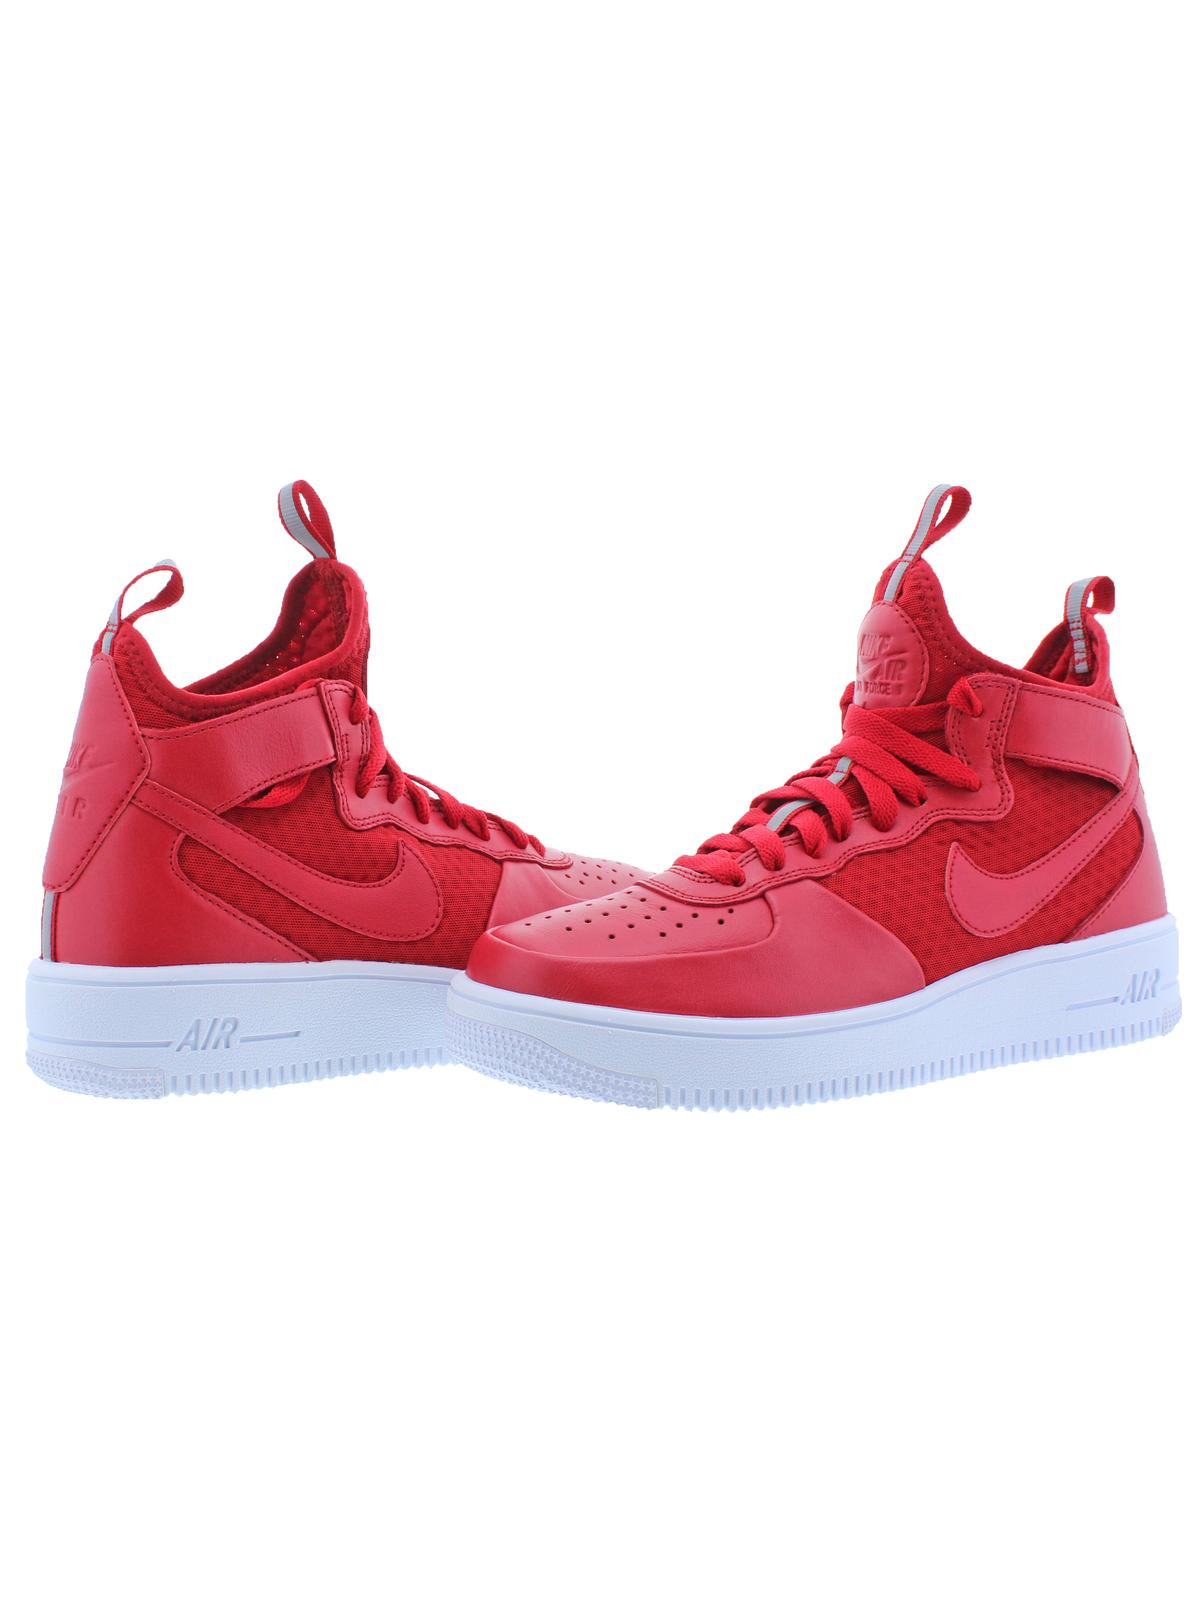 Nike Mens Air Force 1 Ultraforce Mid Mid Lightweight Fashion Sneakers